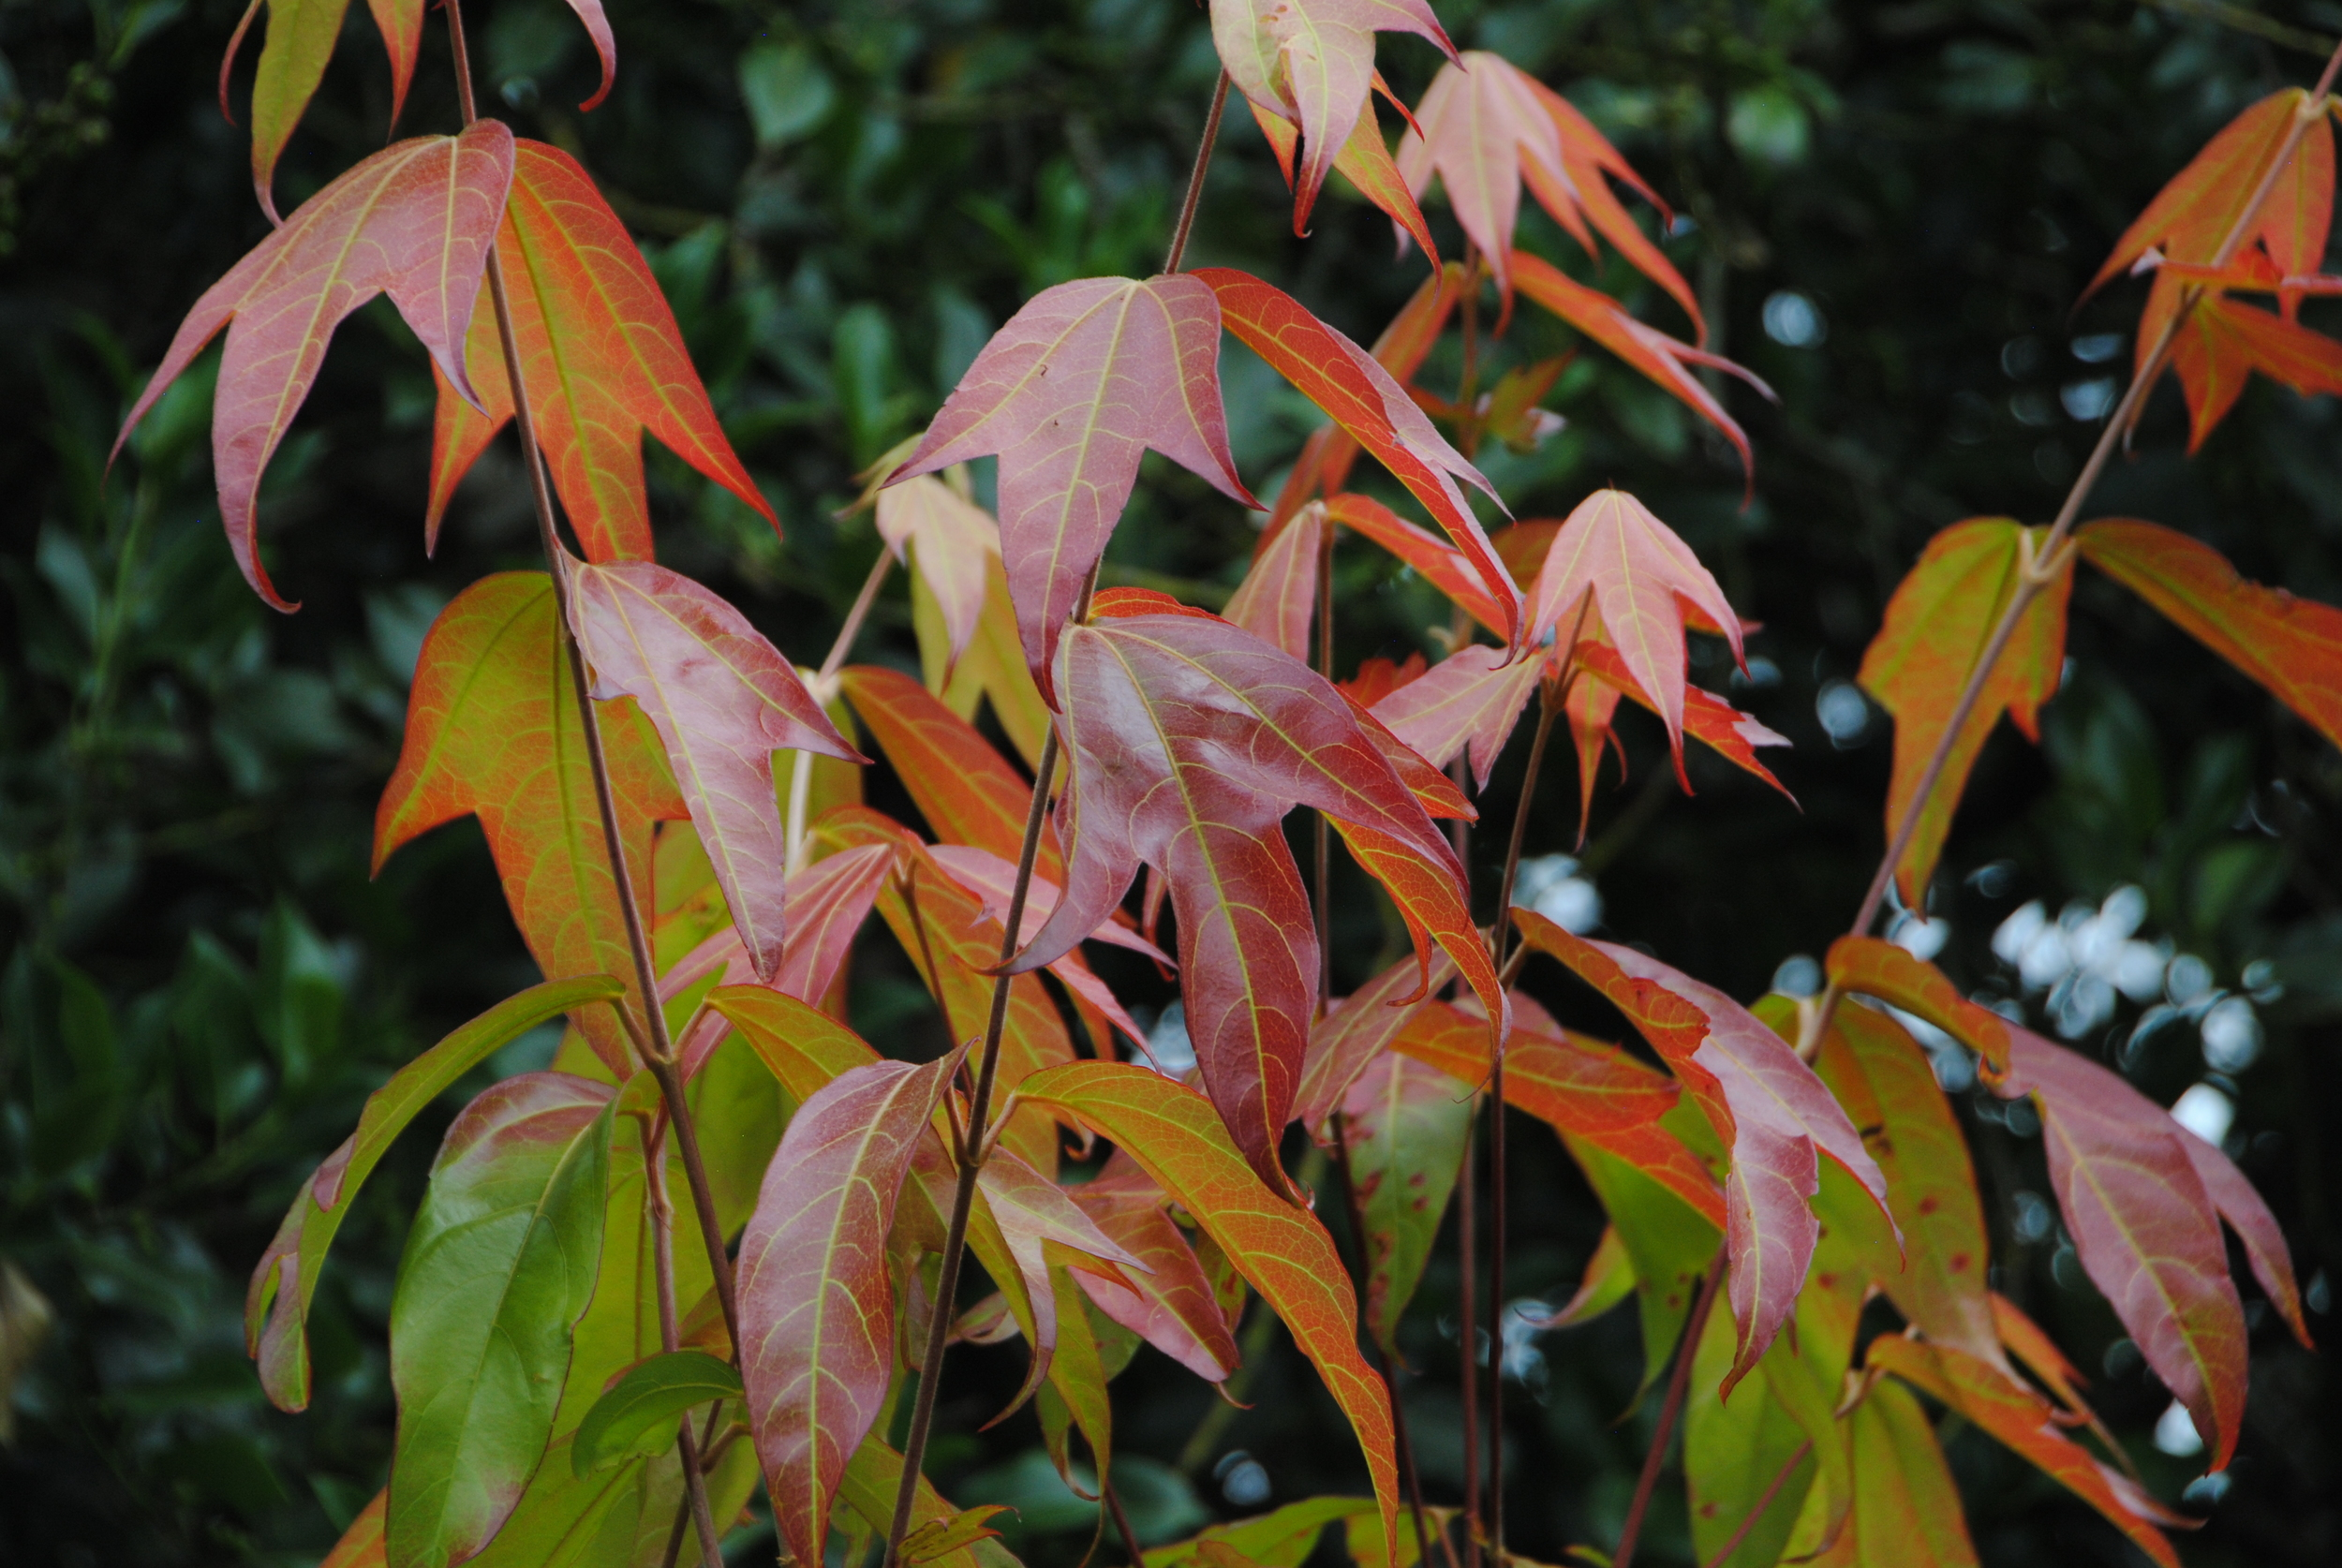 The gorgeous foliage of Acer tonkinense subsp. liquidambarifolium is drool-worthy but unfortunately regulations prohited me from bringing it to the US.